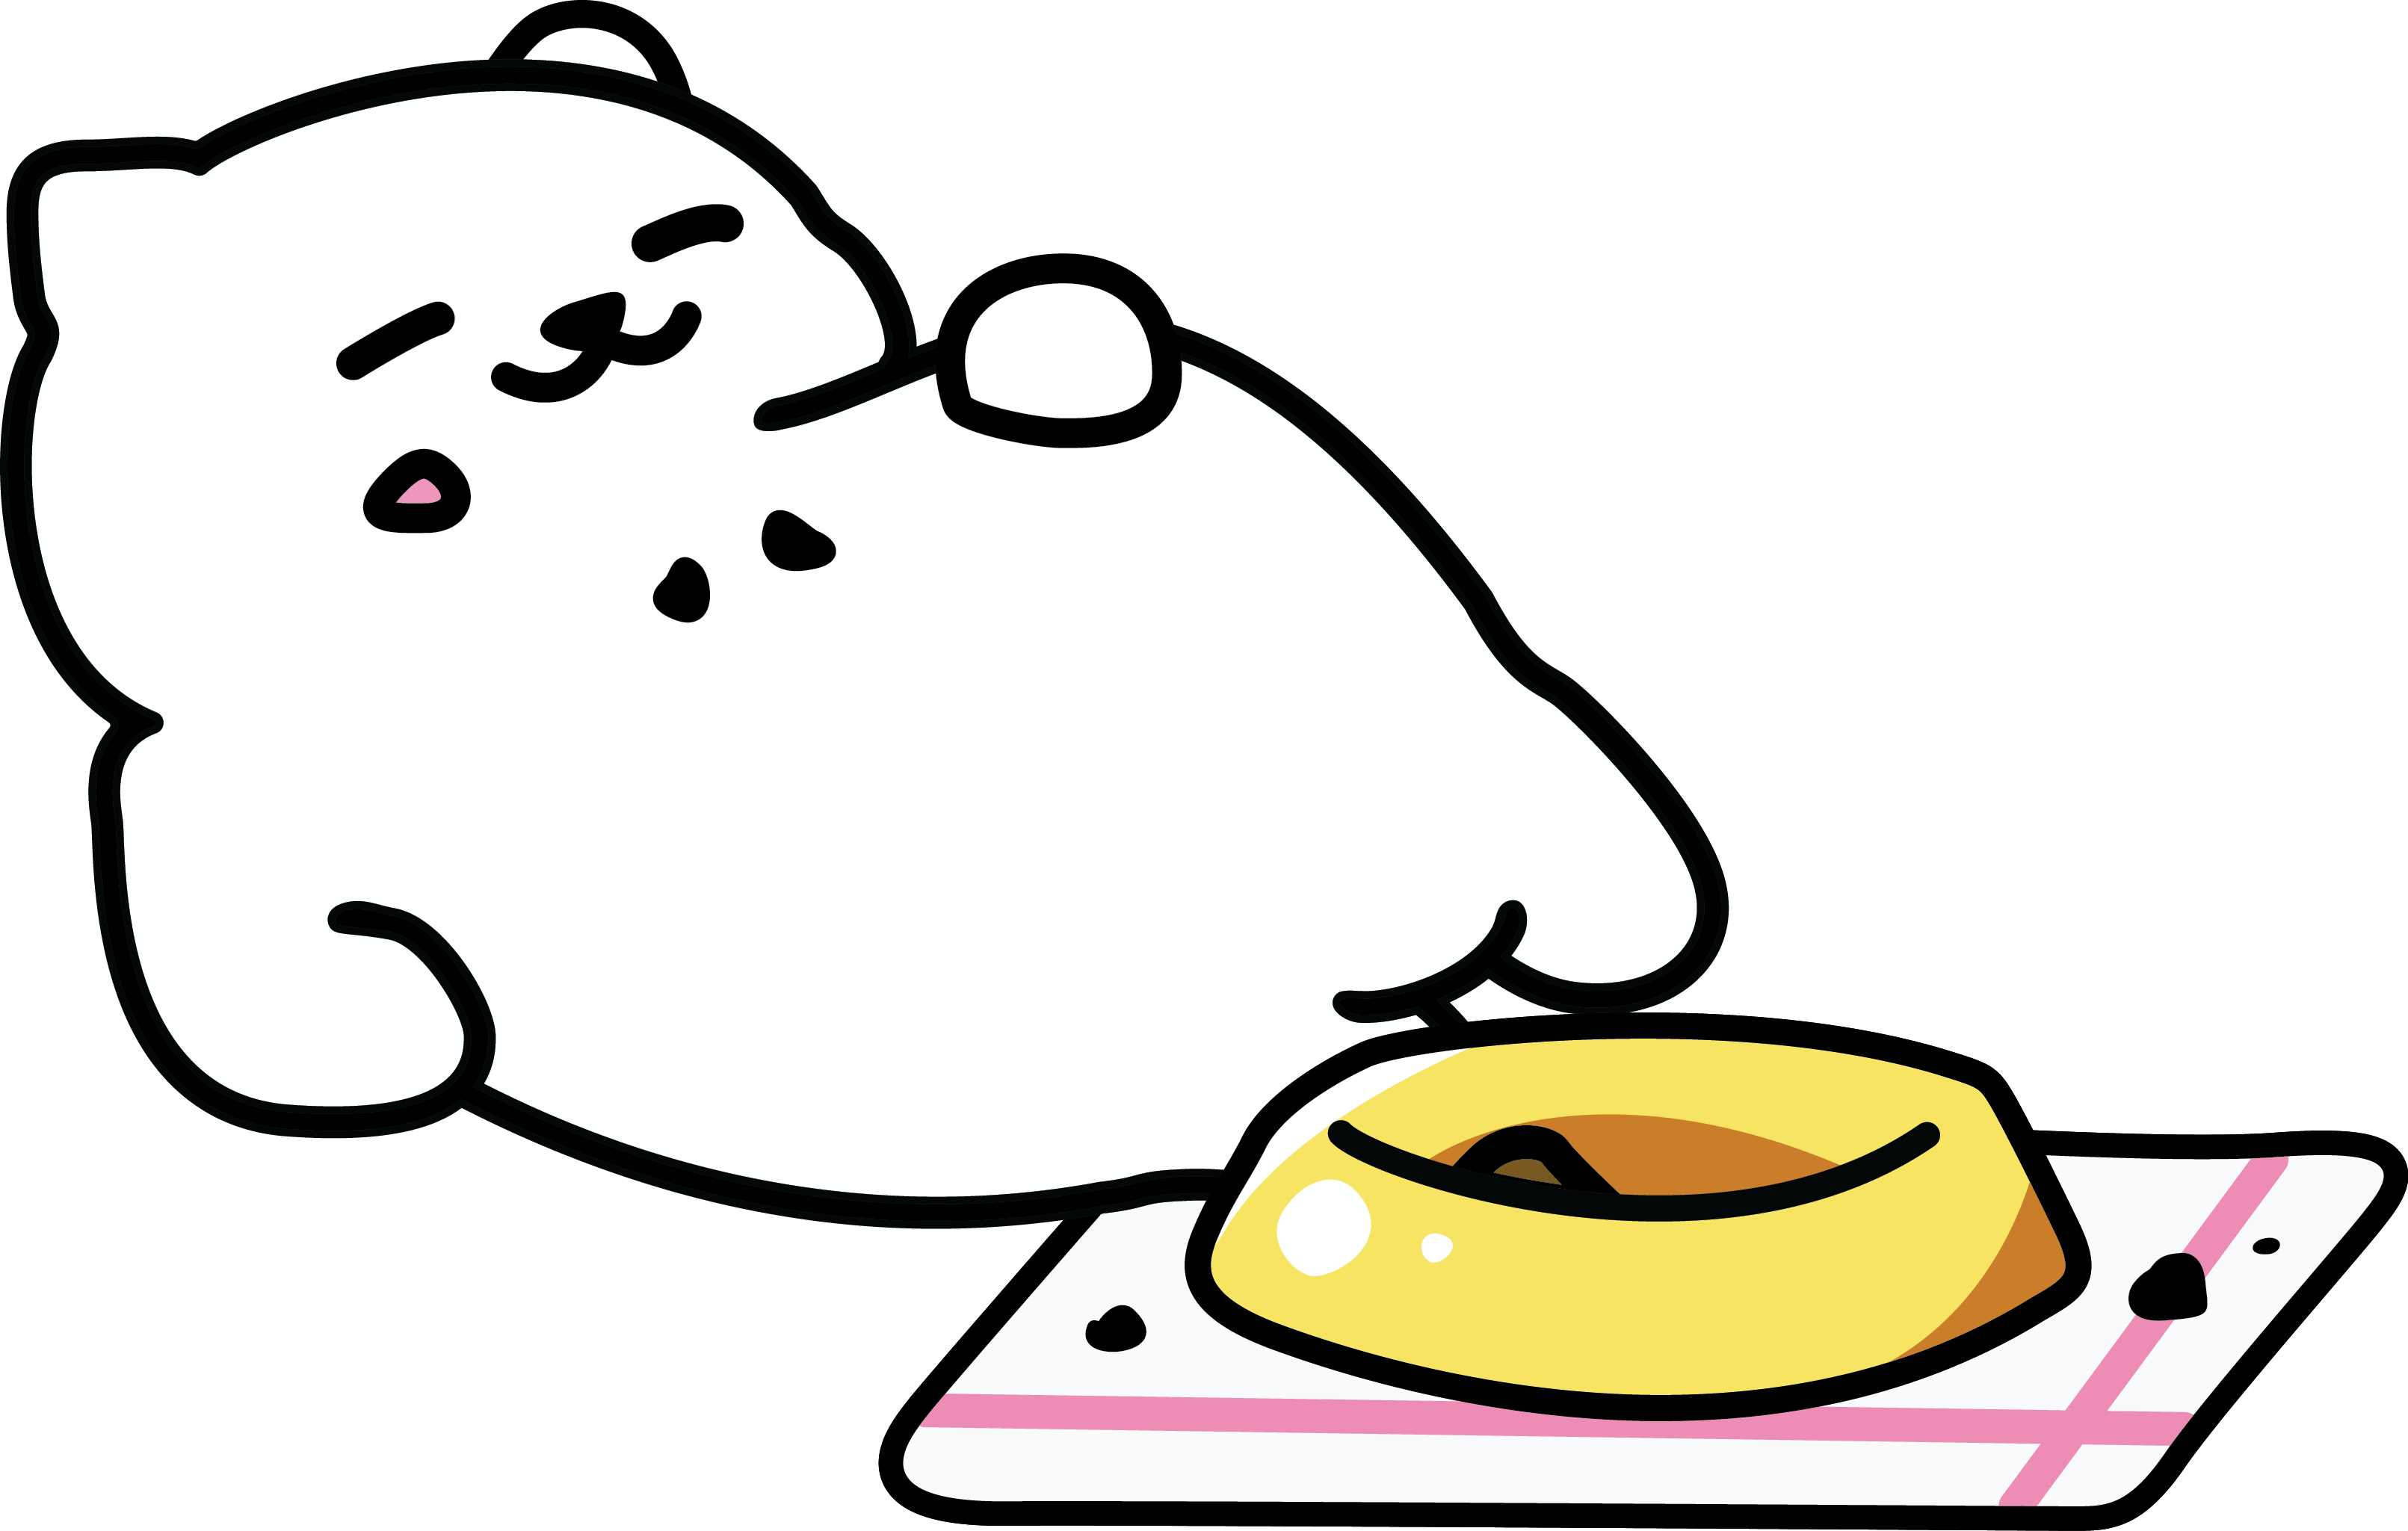 Pusheen vector outline. A brief history of